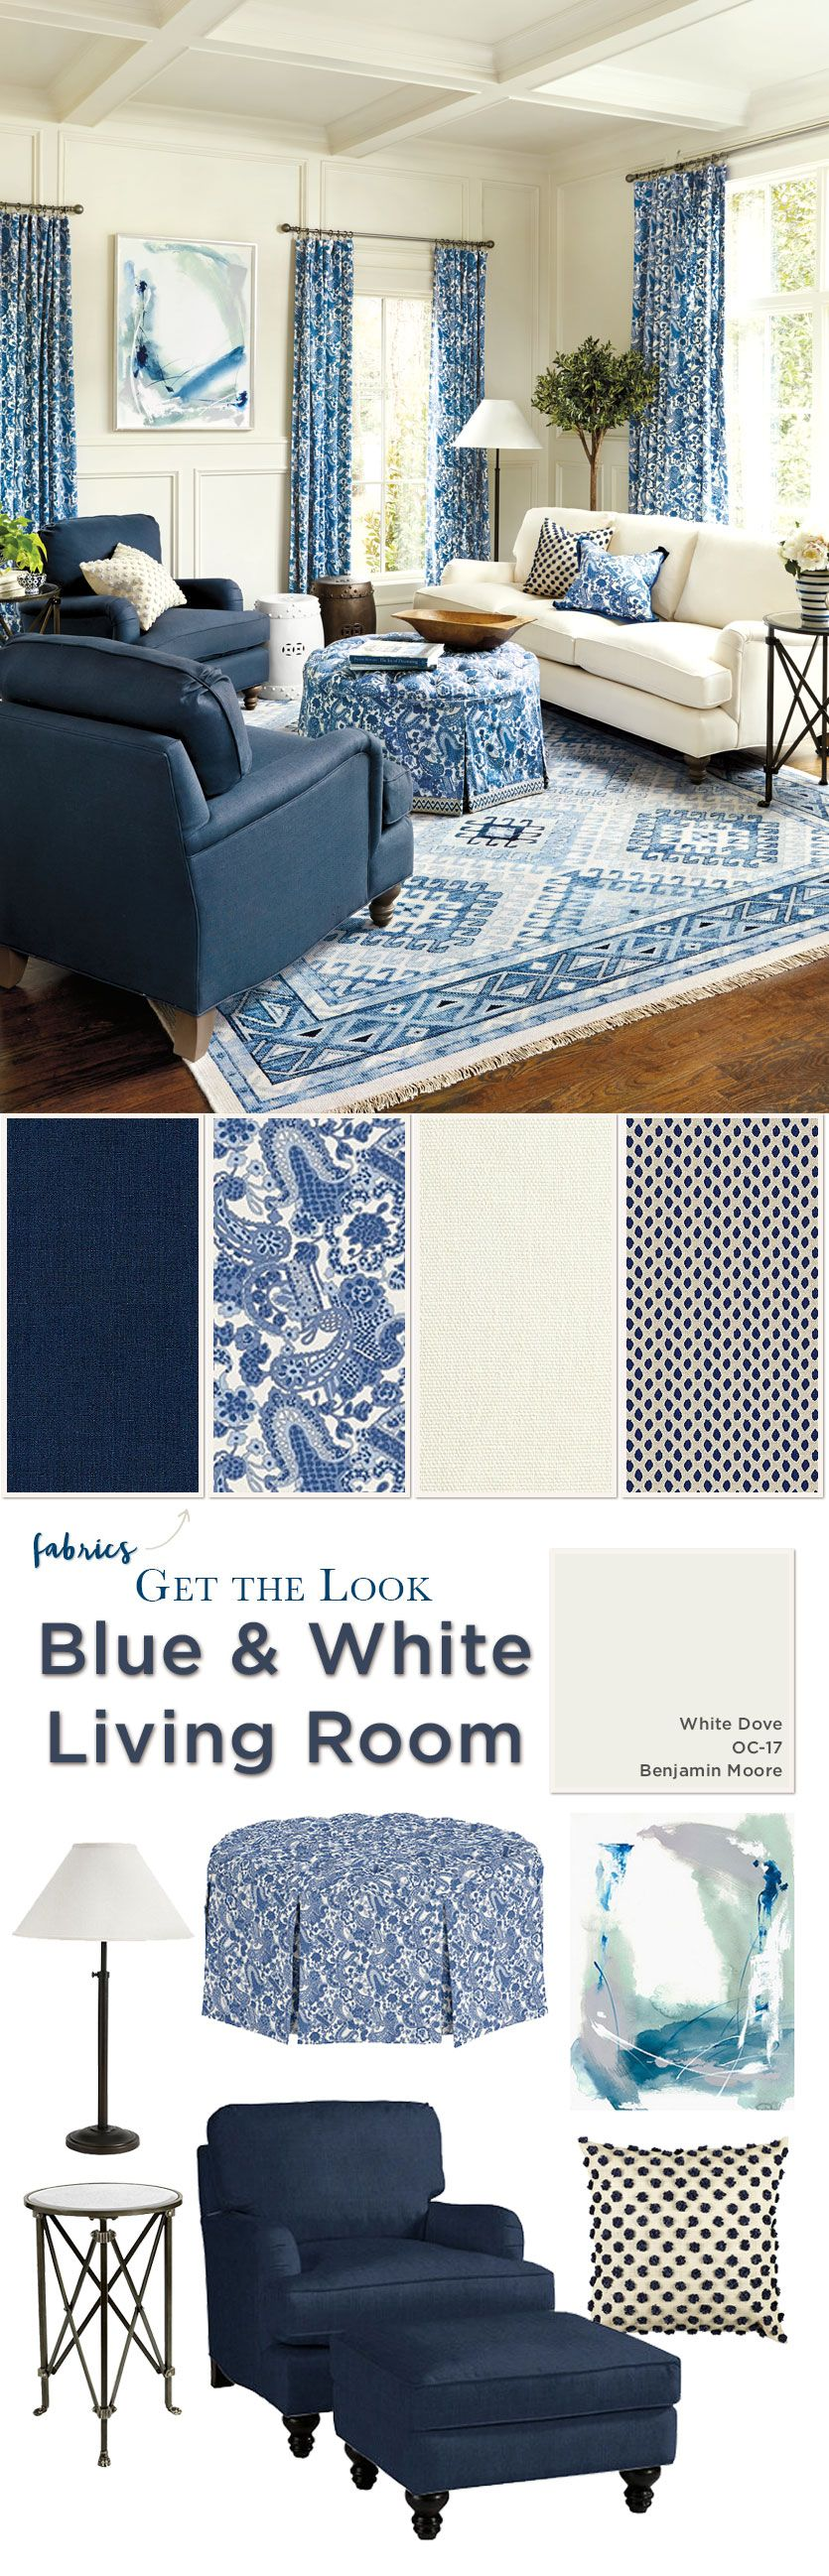 Create a Blue & White Living Room